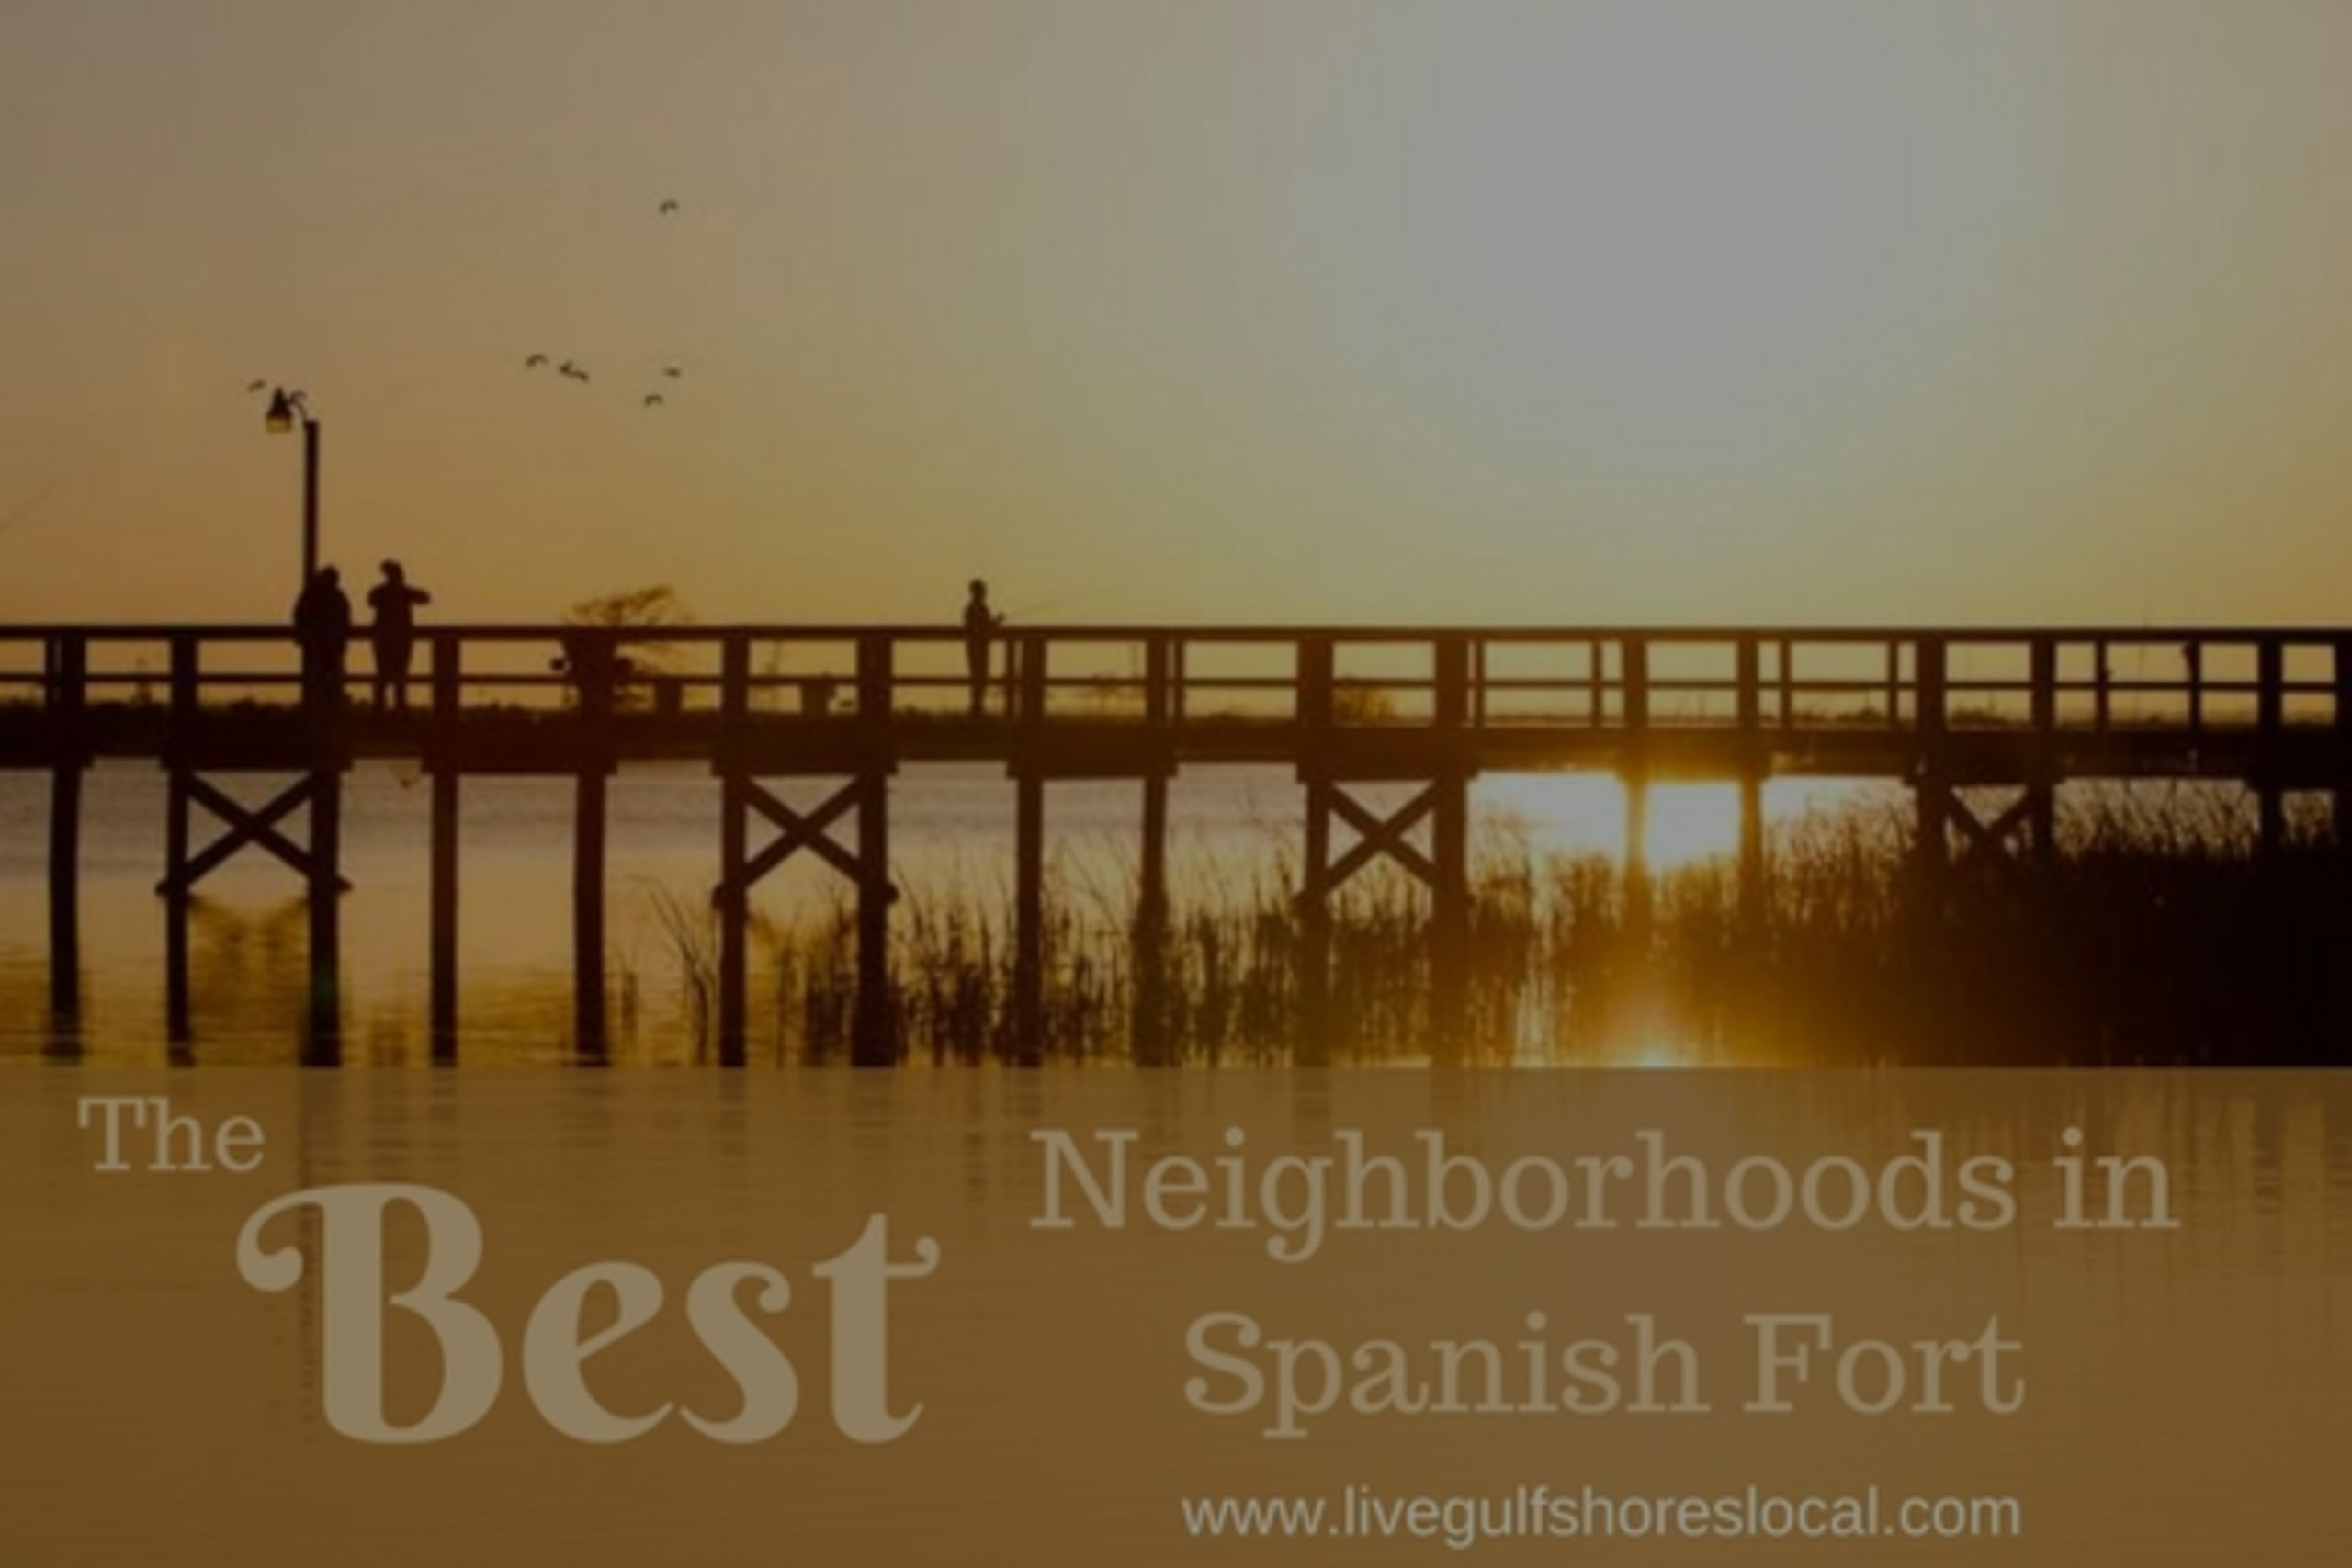 Best Neighborhoods in Spanish Fort – Winter 2017/2018